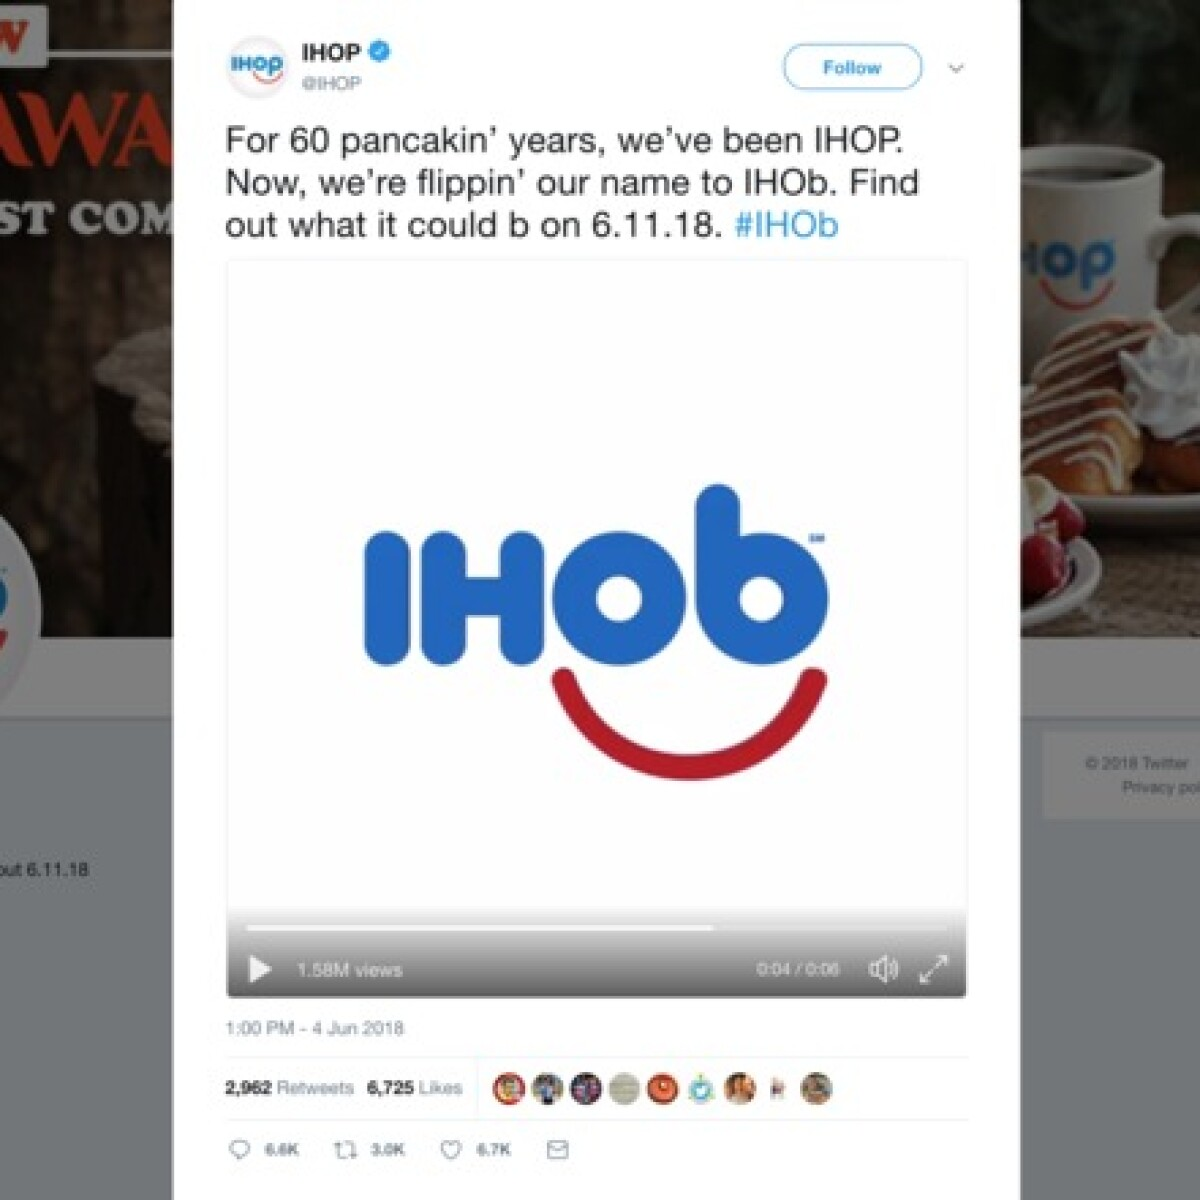 Is IHOP getting rid of pancakes? Changing name to \'IHOb\'